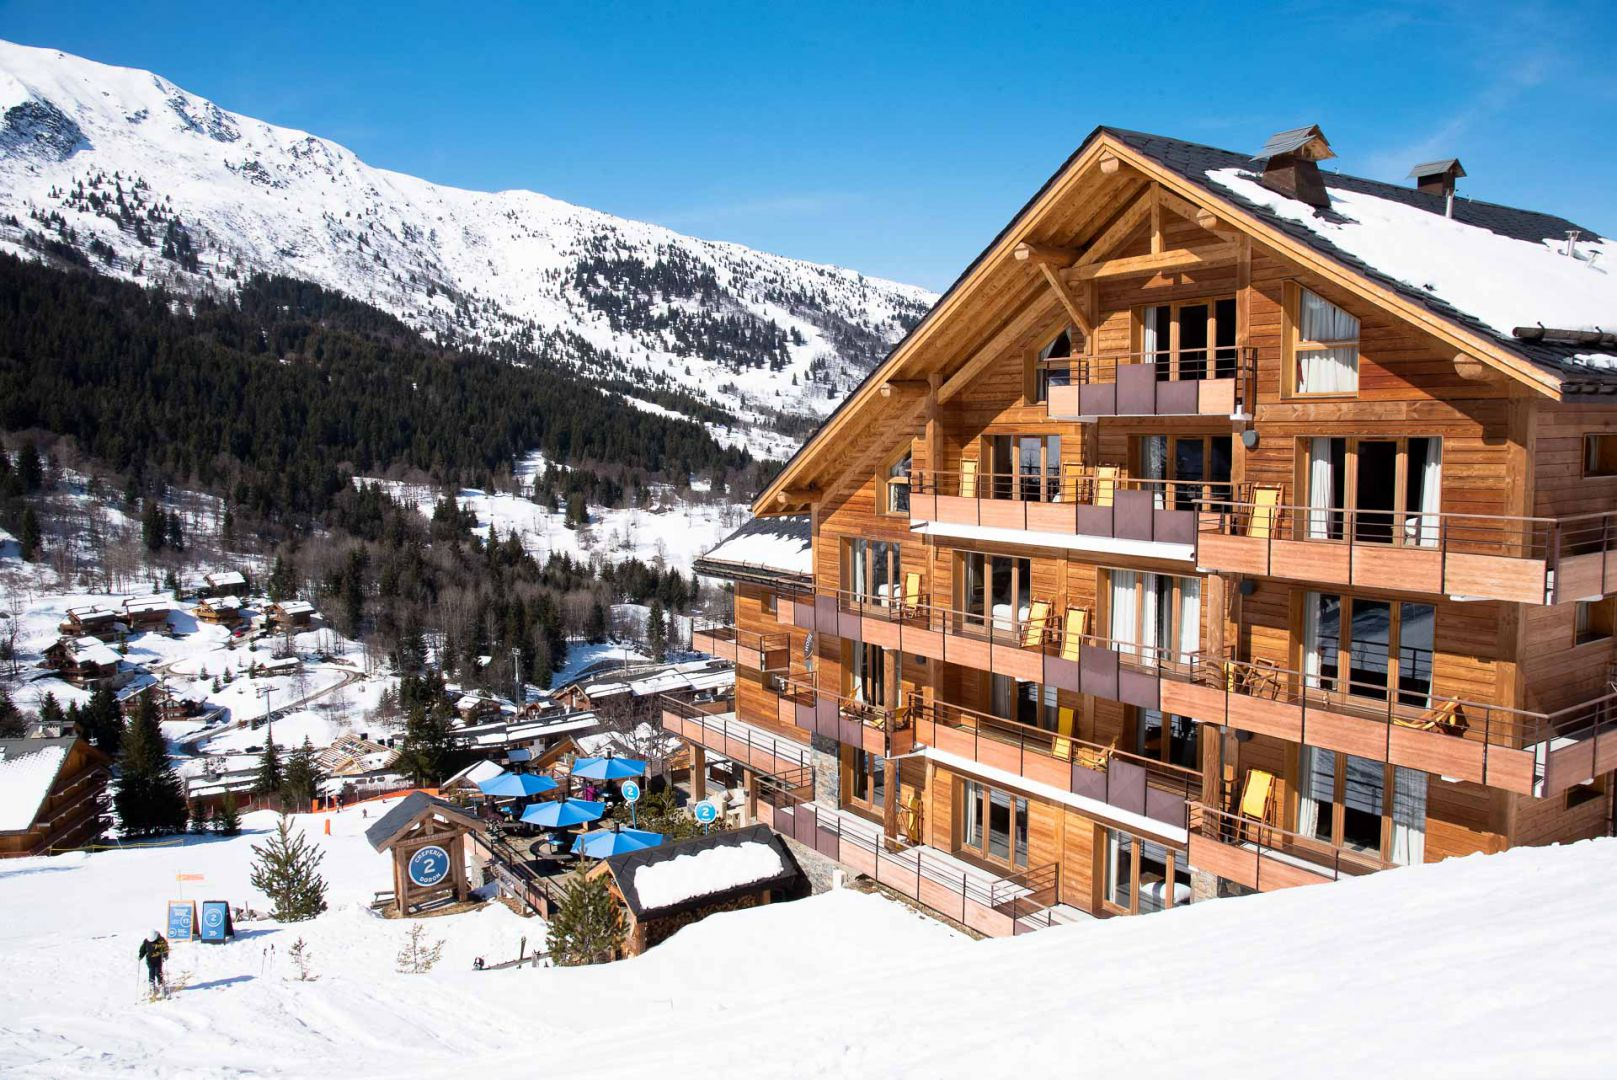 Hotel Piscine Meribel